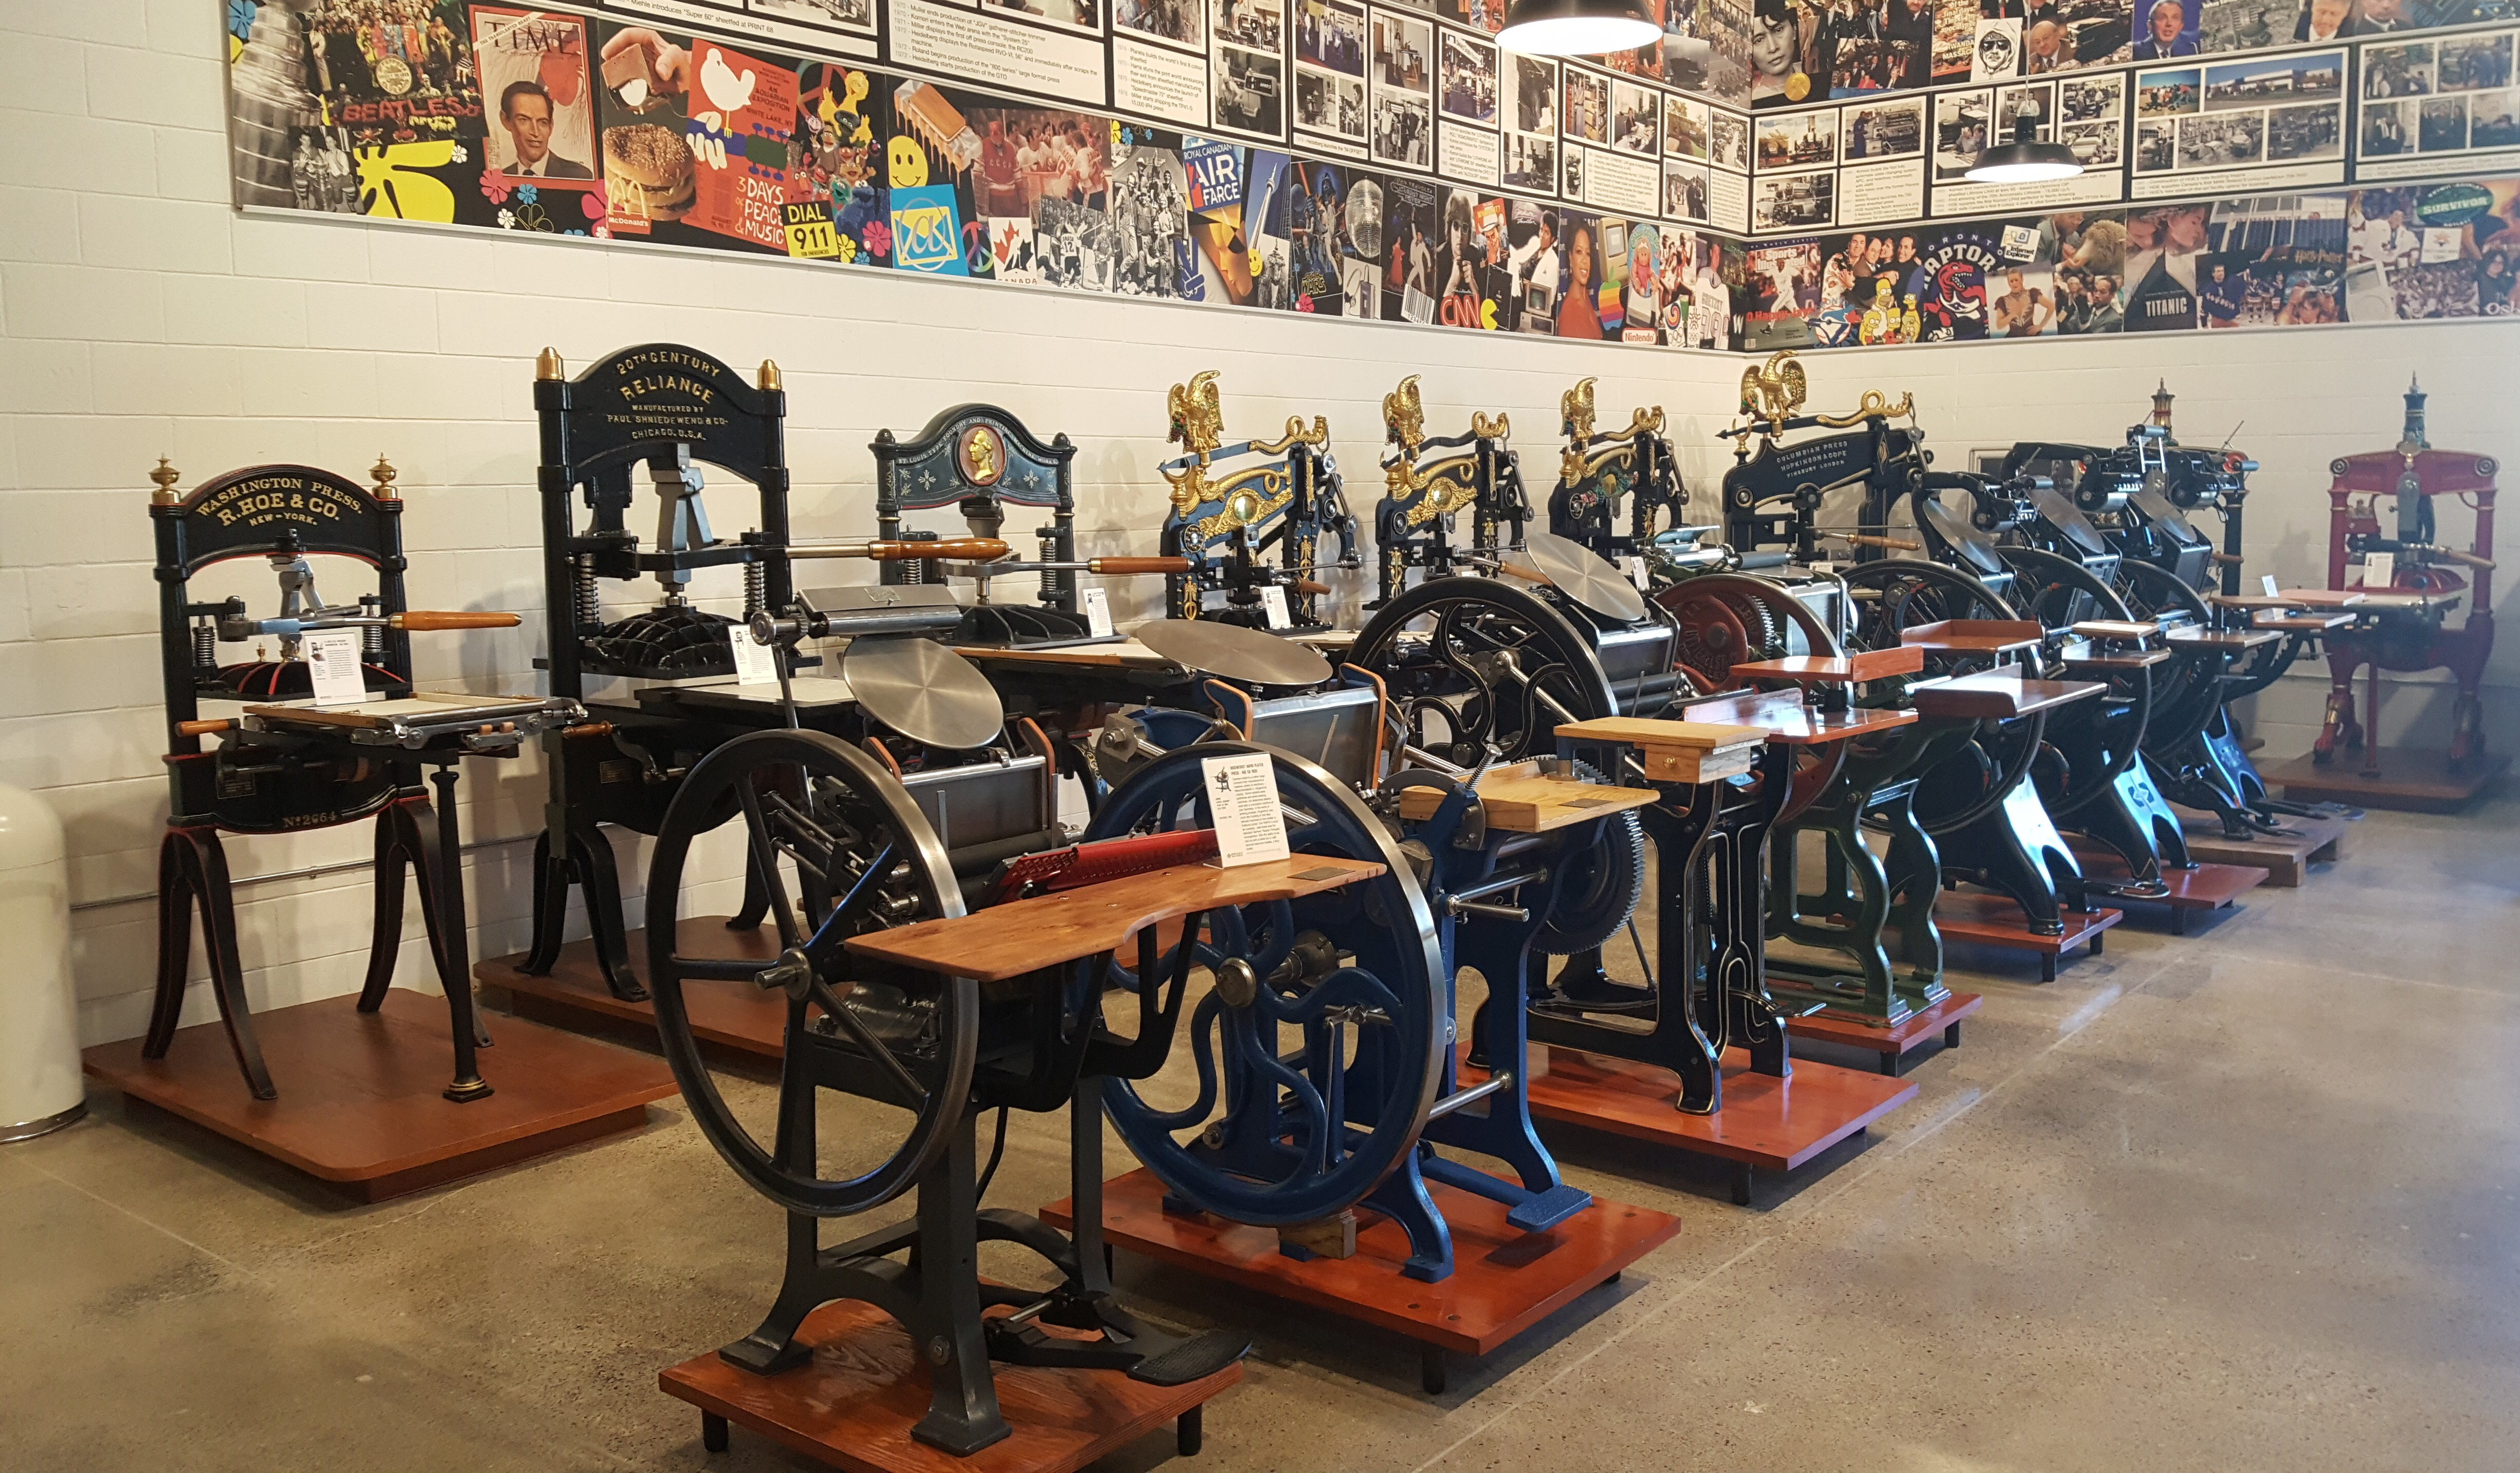 One bay in the back room, filled with iron presses and platen presses